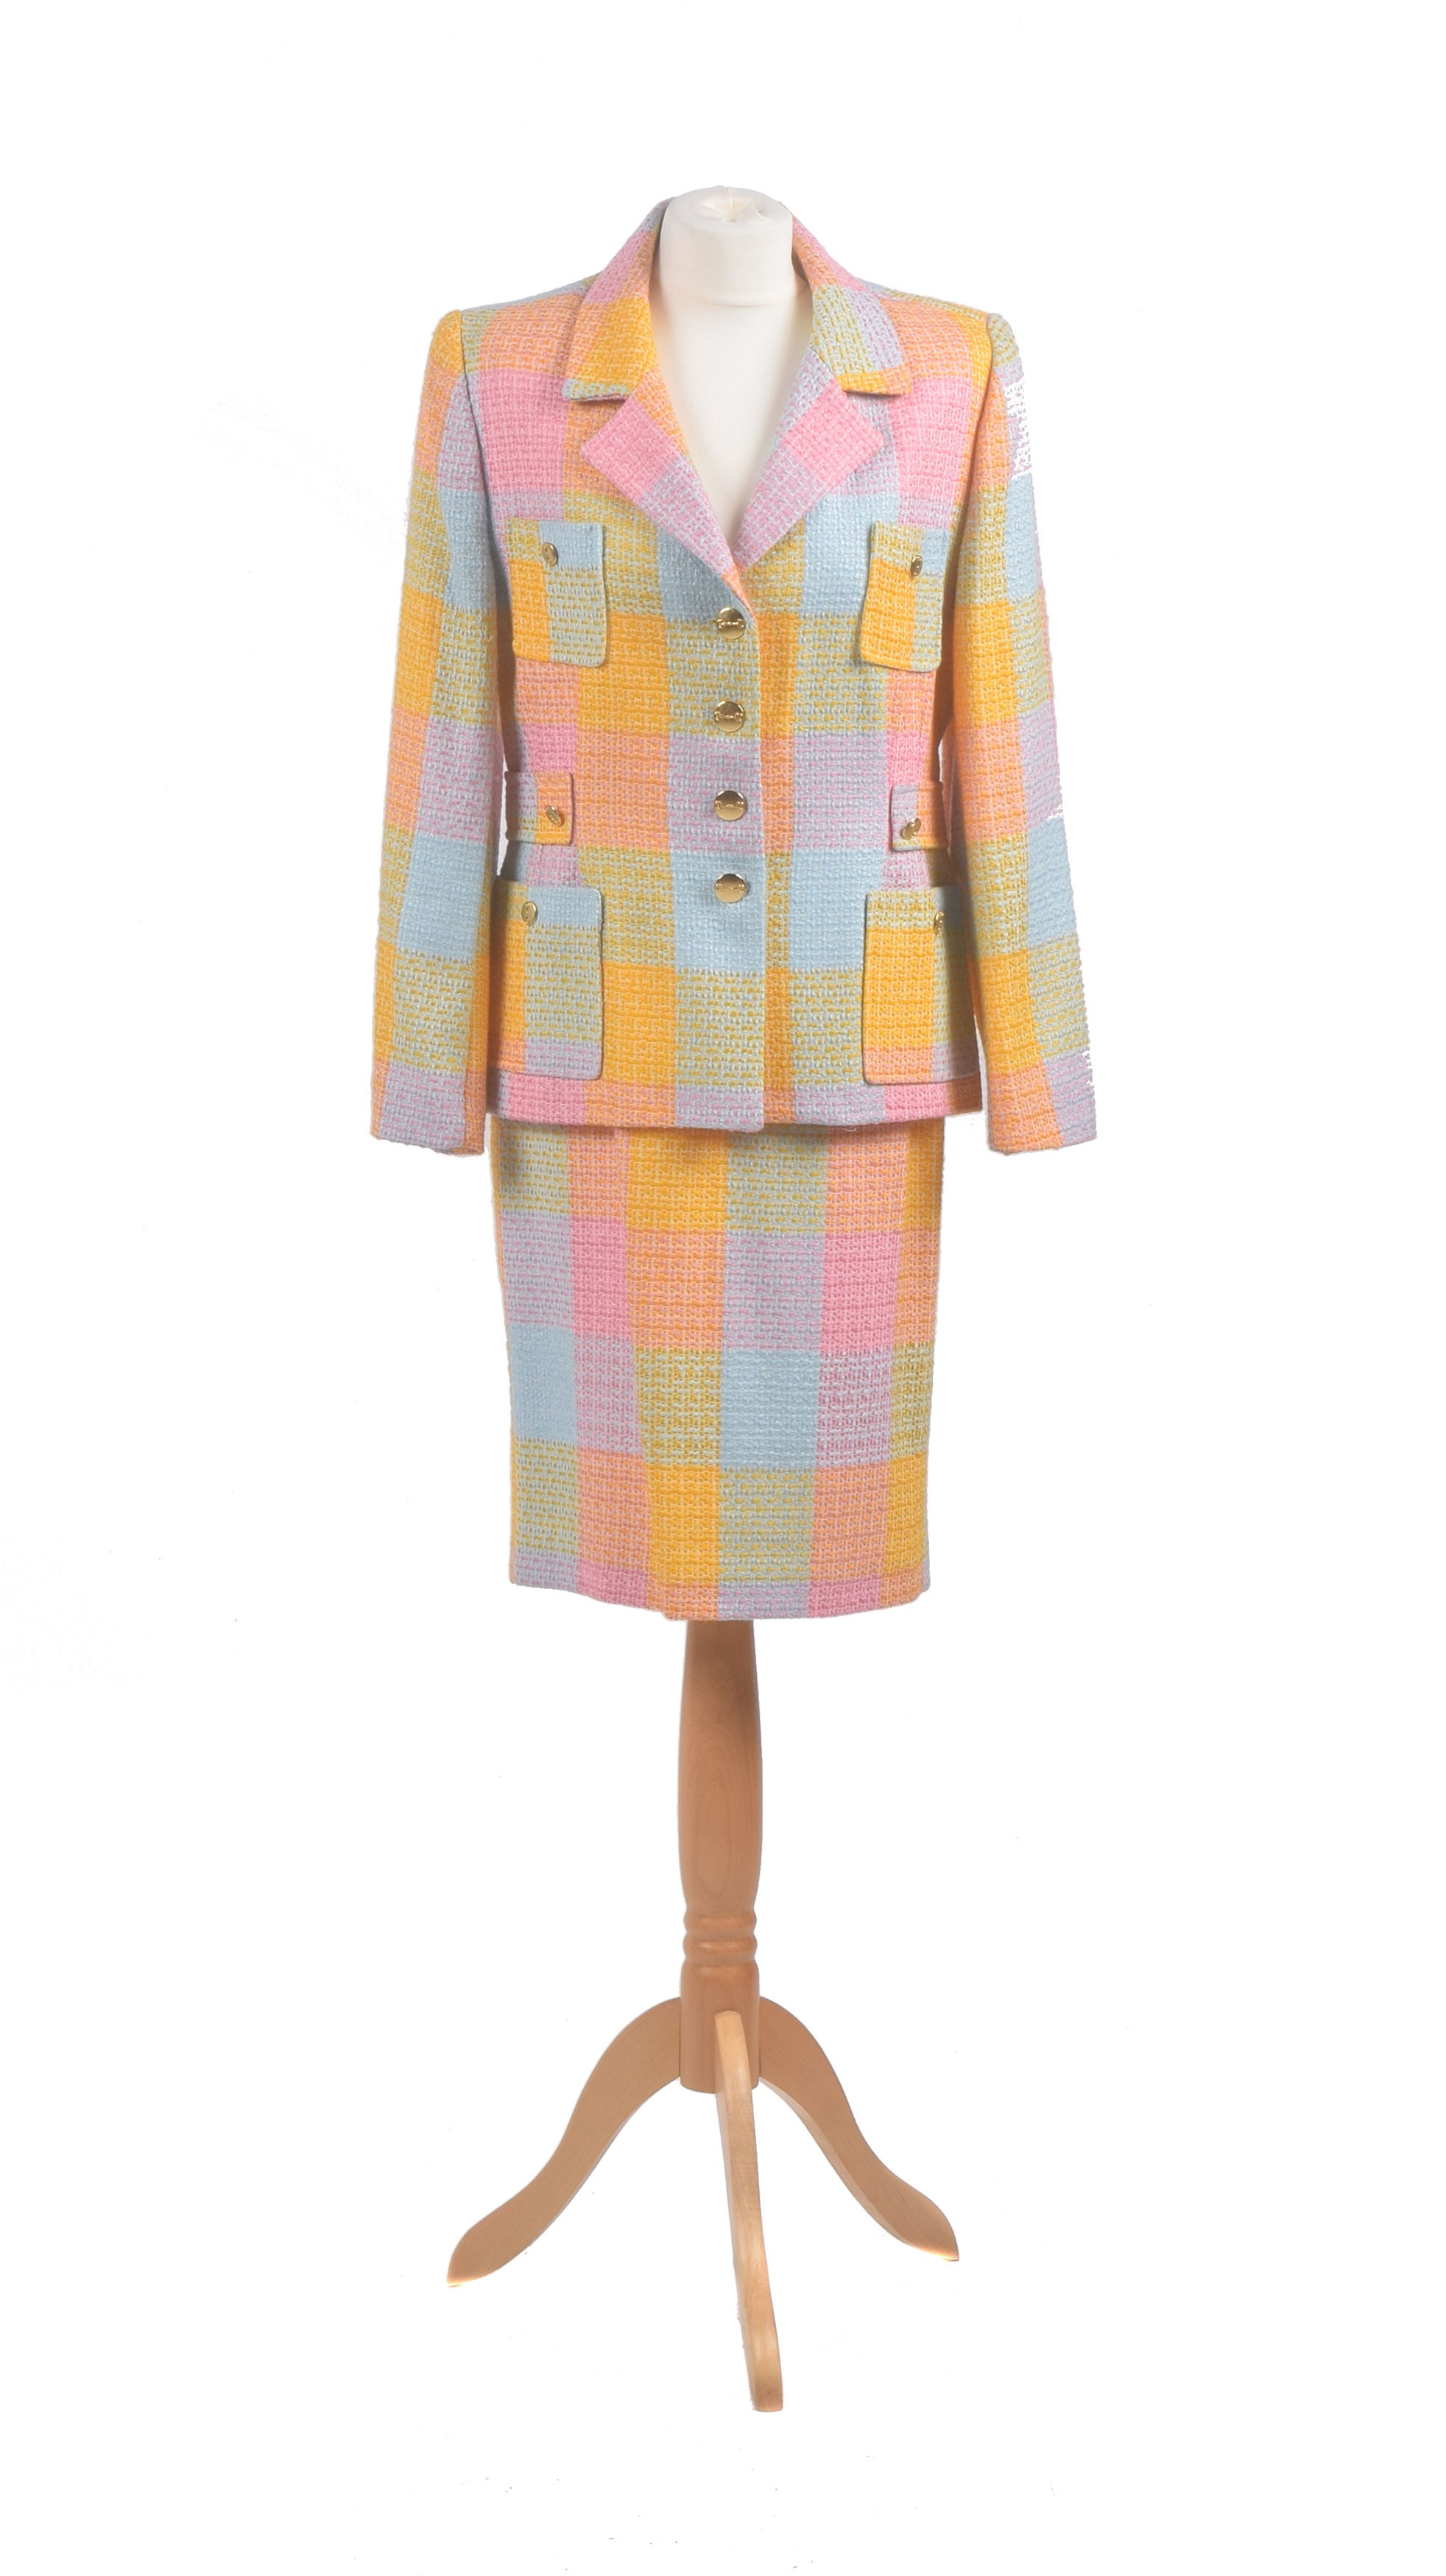 A suit by Helena Stern, comprising a mid-length skirt and jacket in pink, blue and yellow woven wool with gold tone buttons, size 42.